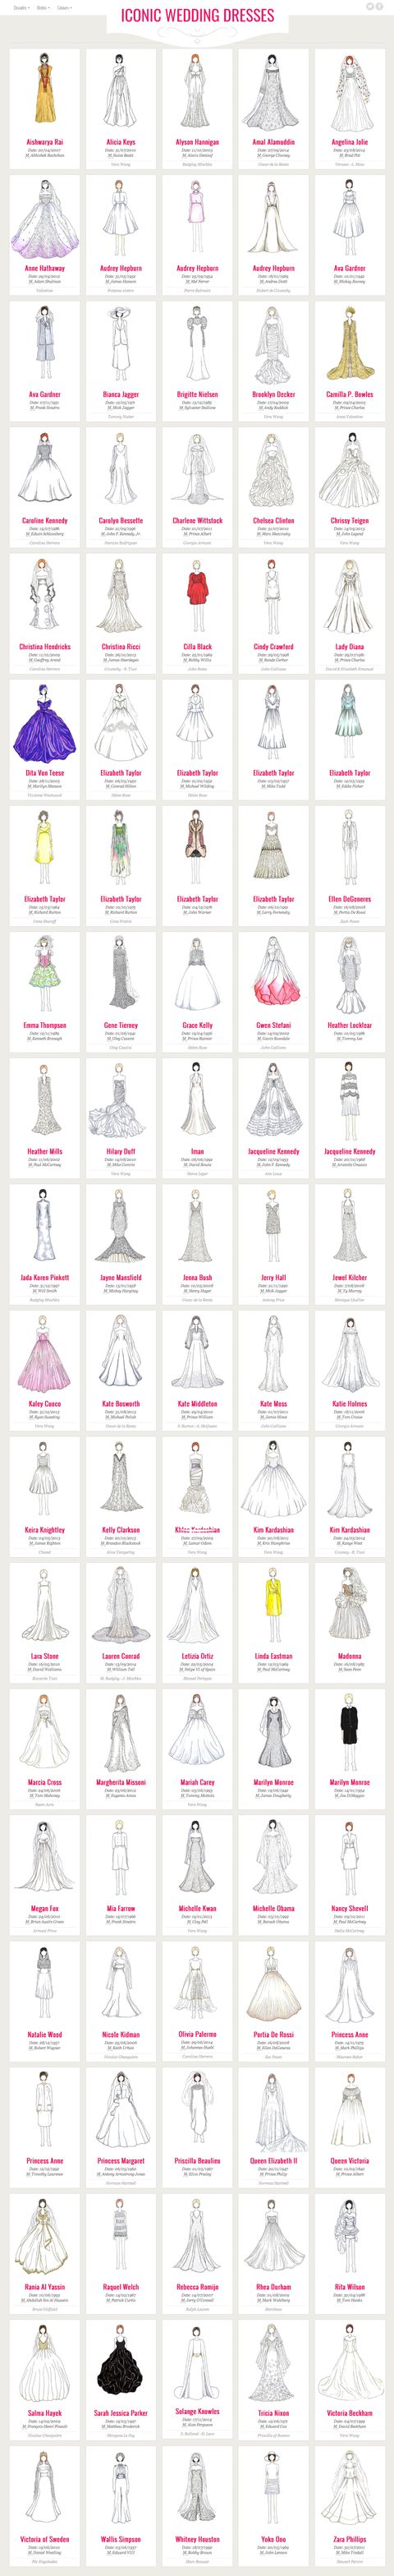 Whether you're in the market for personal wedding inspiration or just enjoy gazing at the beautiful illustrations, you'll love the detailed chart.